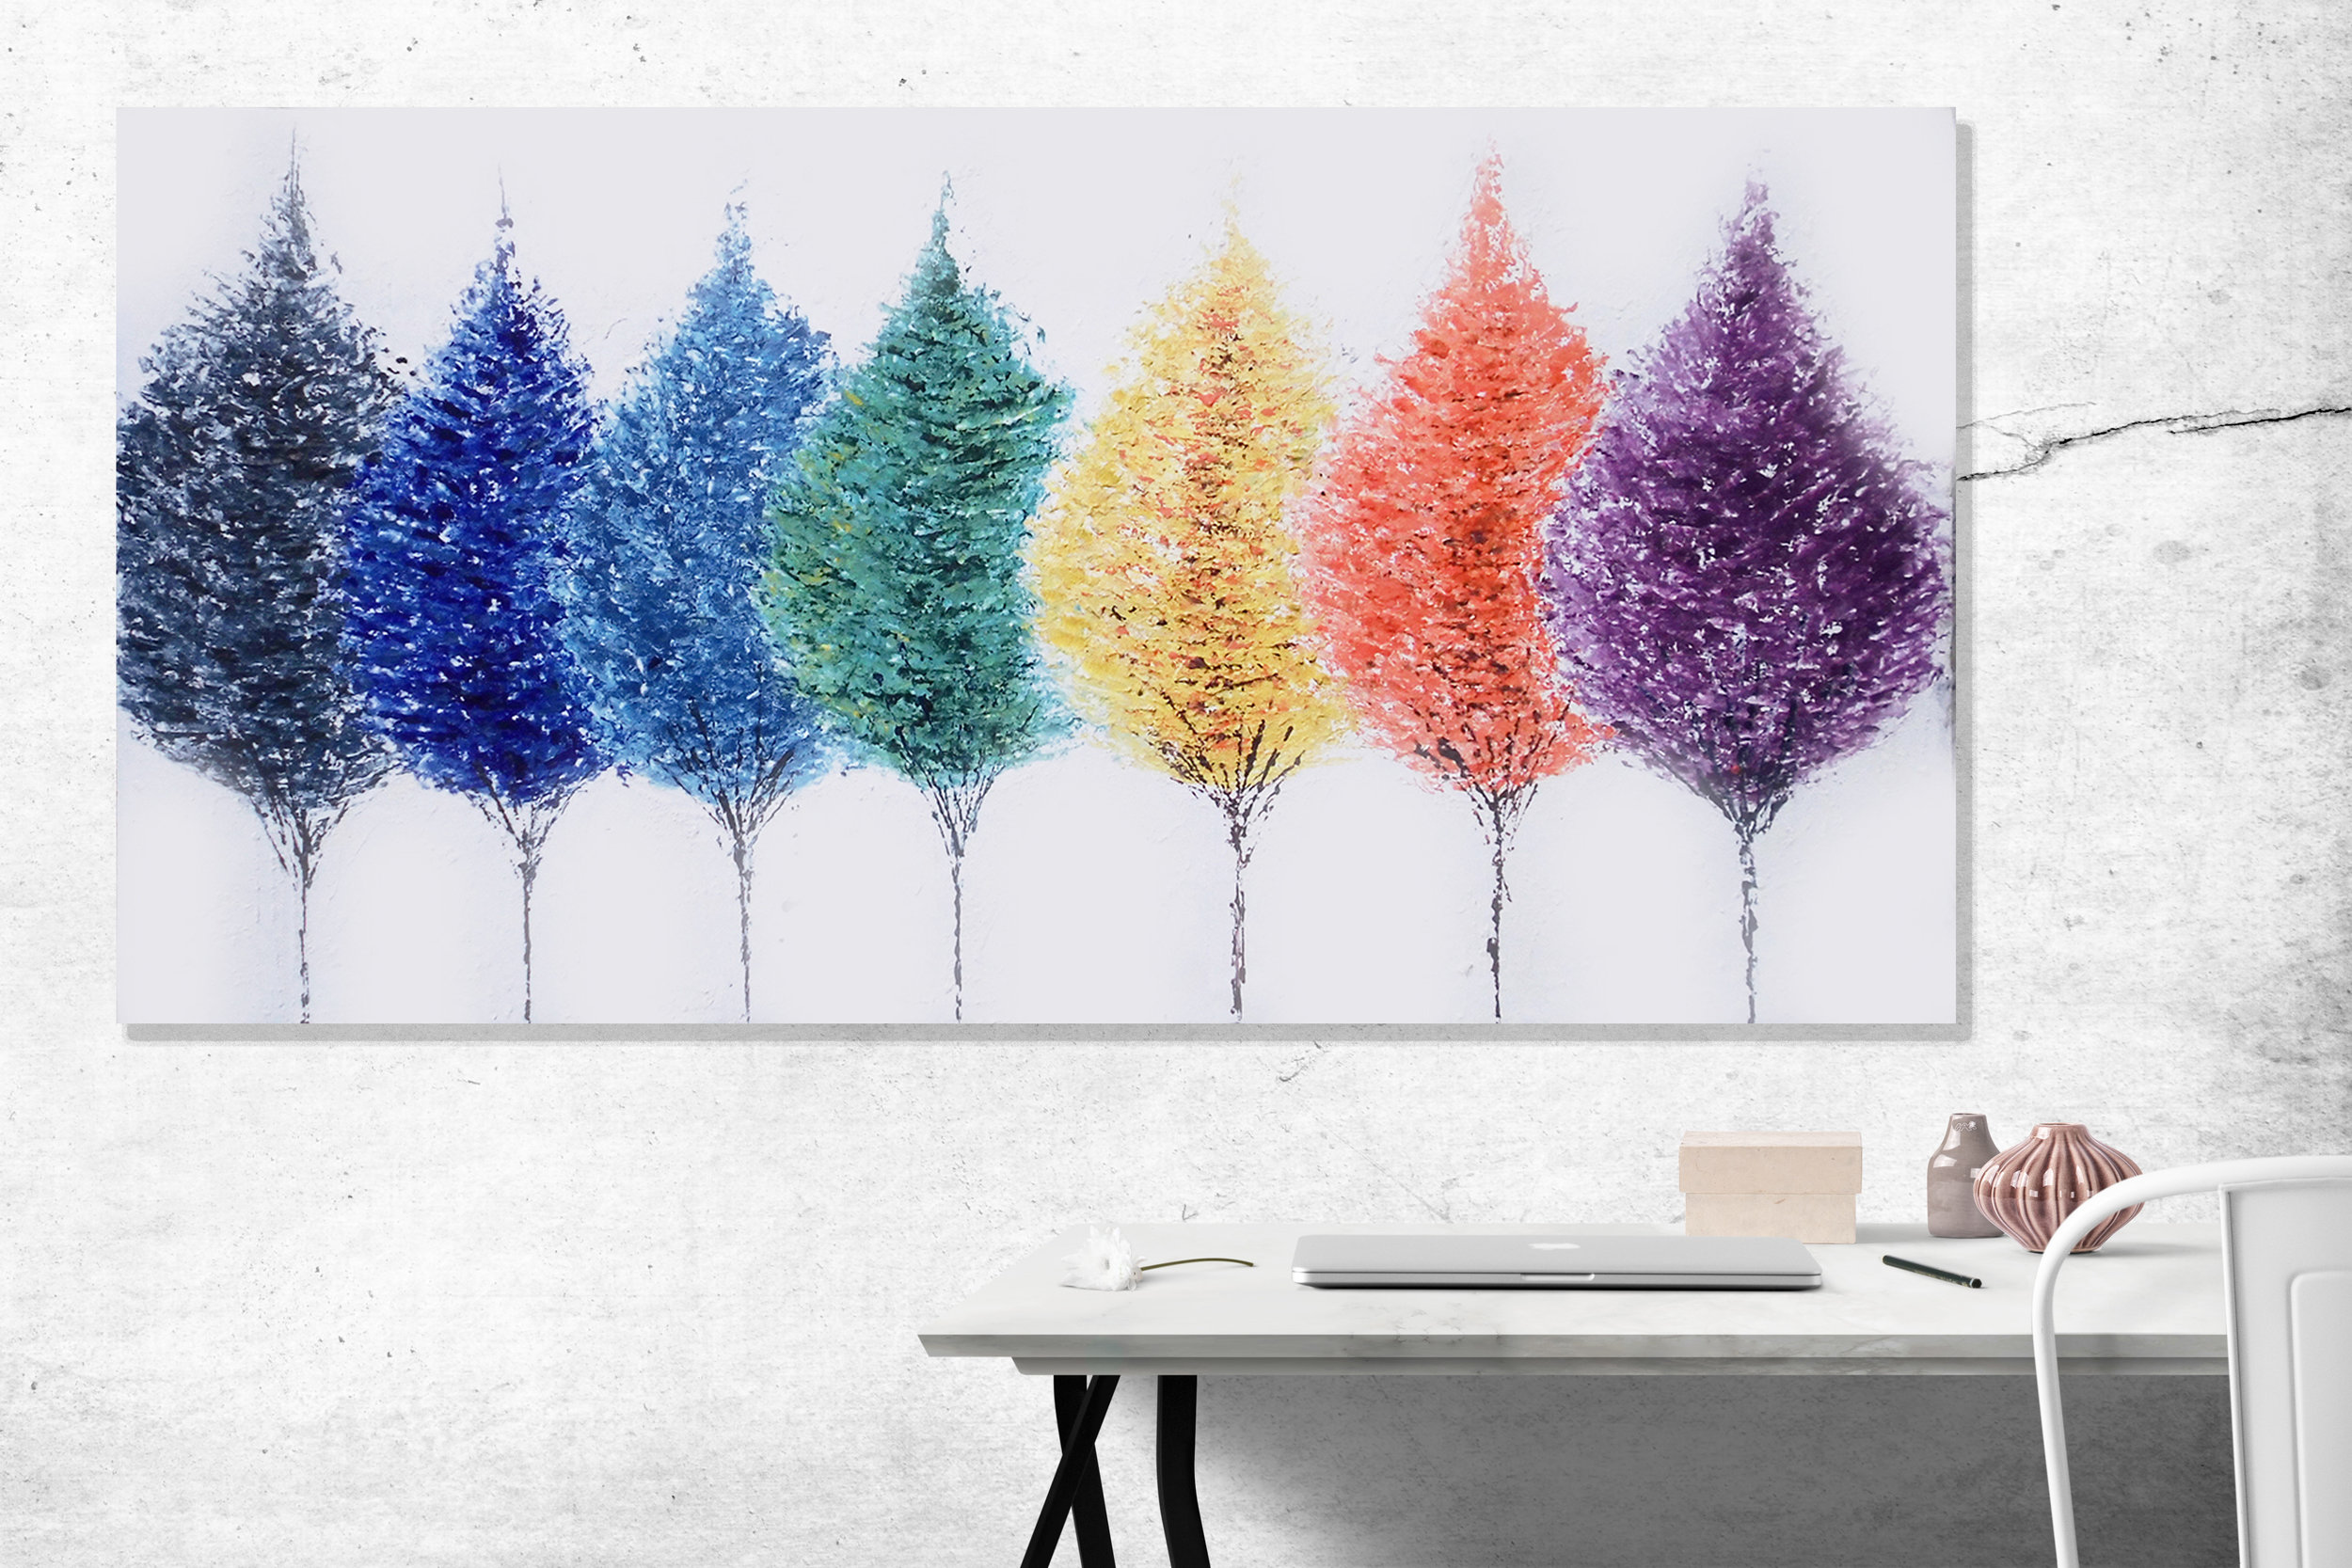 Abstract Colourful Trees Painting by Baron